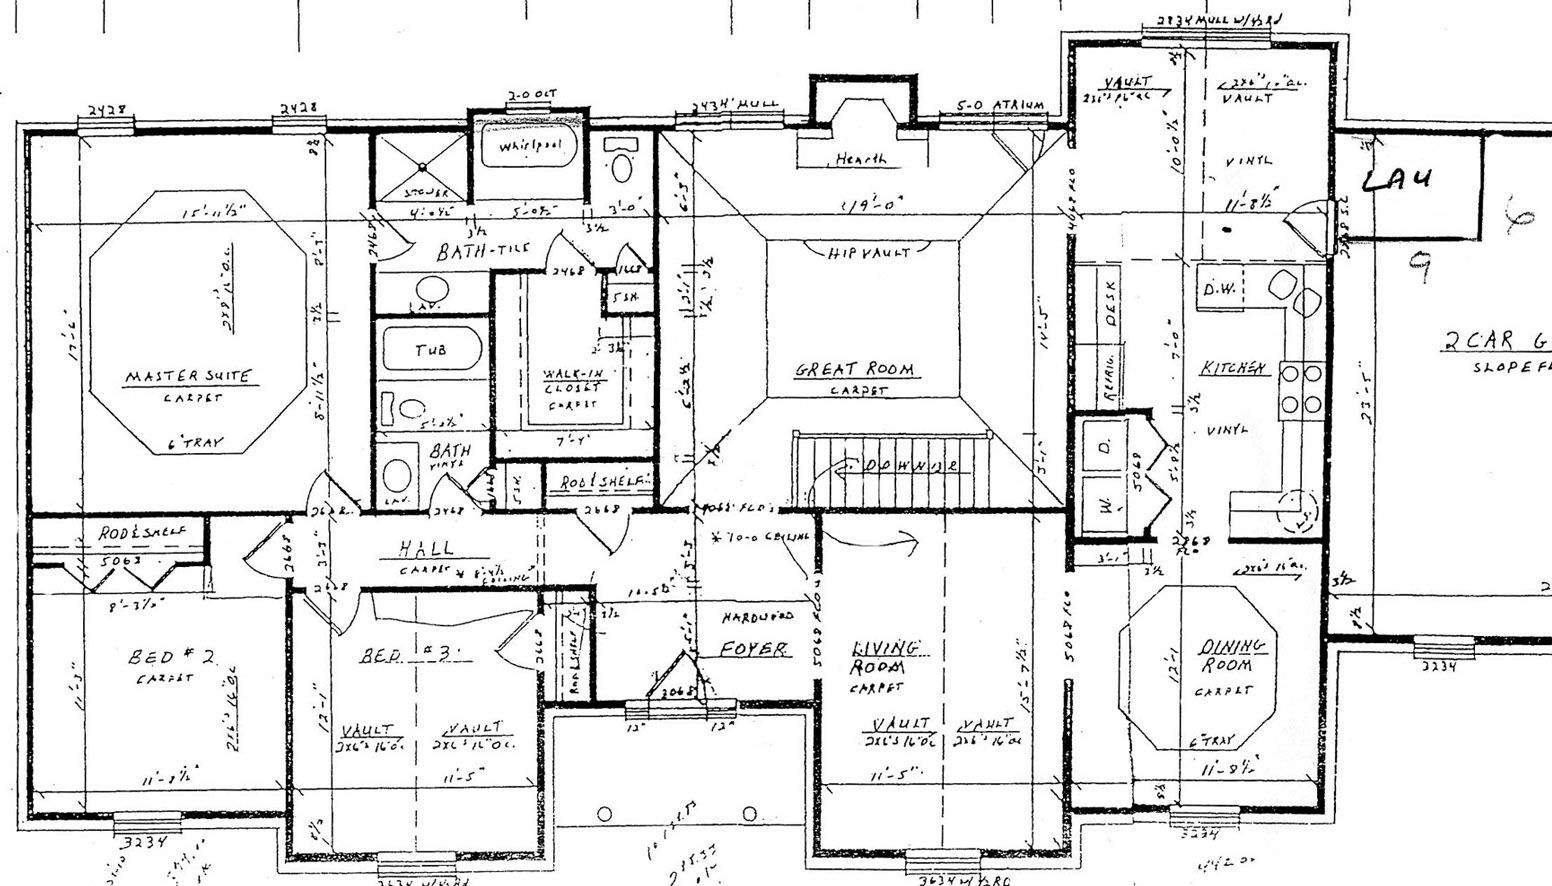 House blueprints with dimensions home plans picture woodland hut house blueprints with dimensions home plans picture woodland hut small minecraft blueprint planetarymap malvernweather Image collections